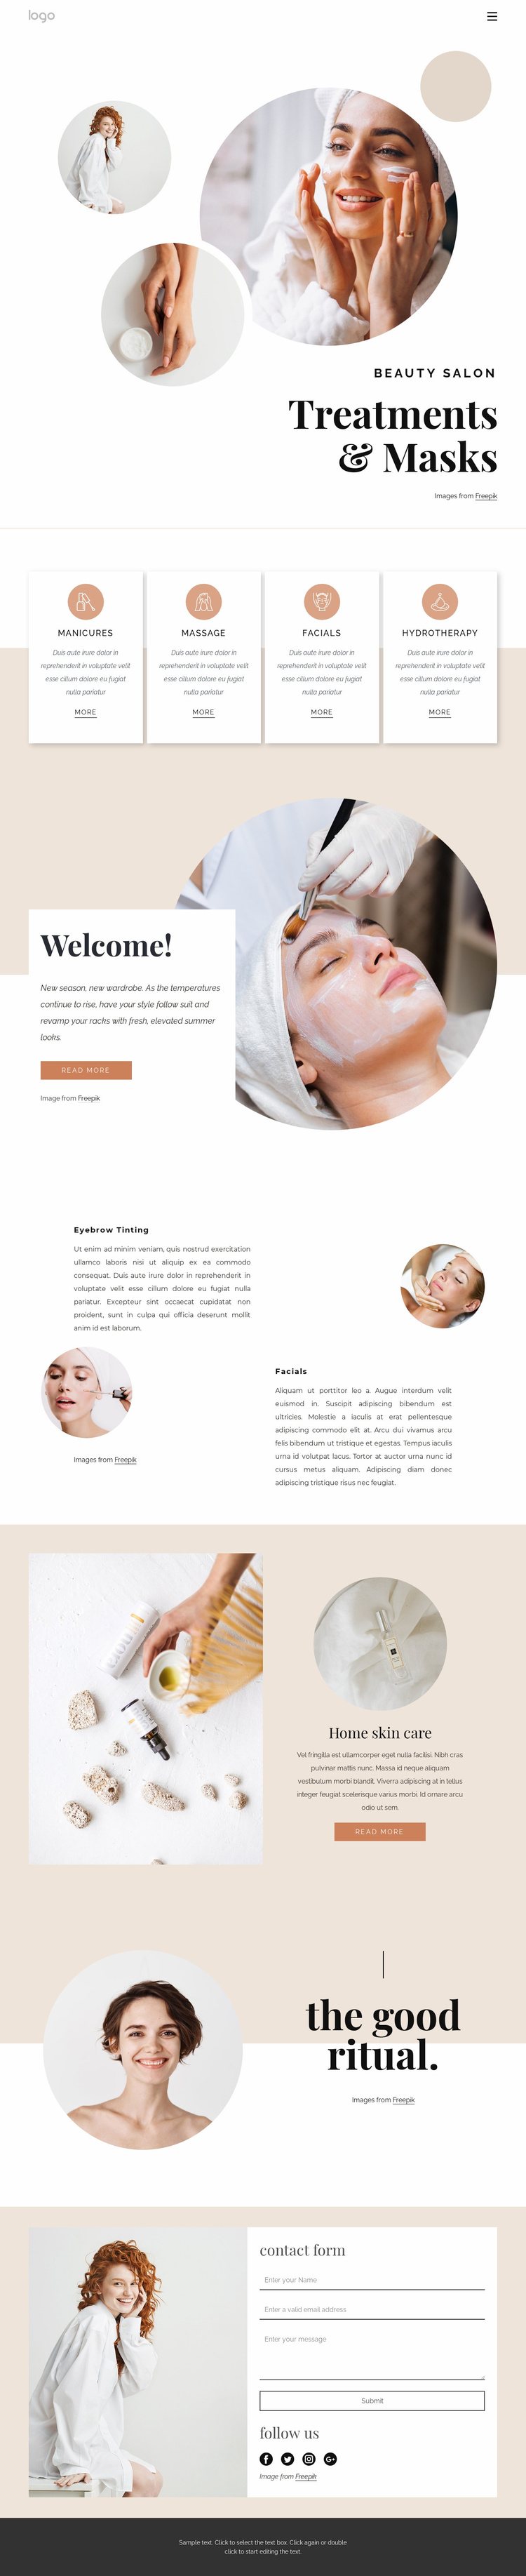 Body treatments and massages Landing Page